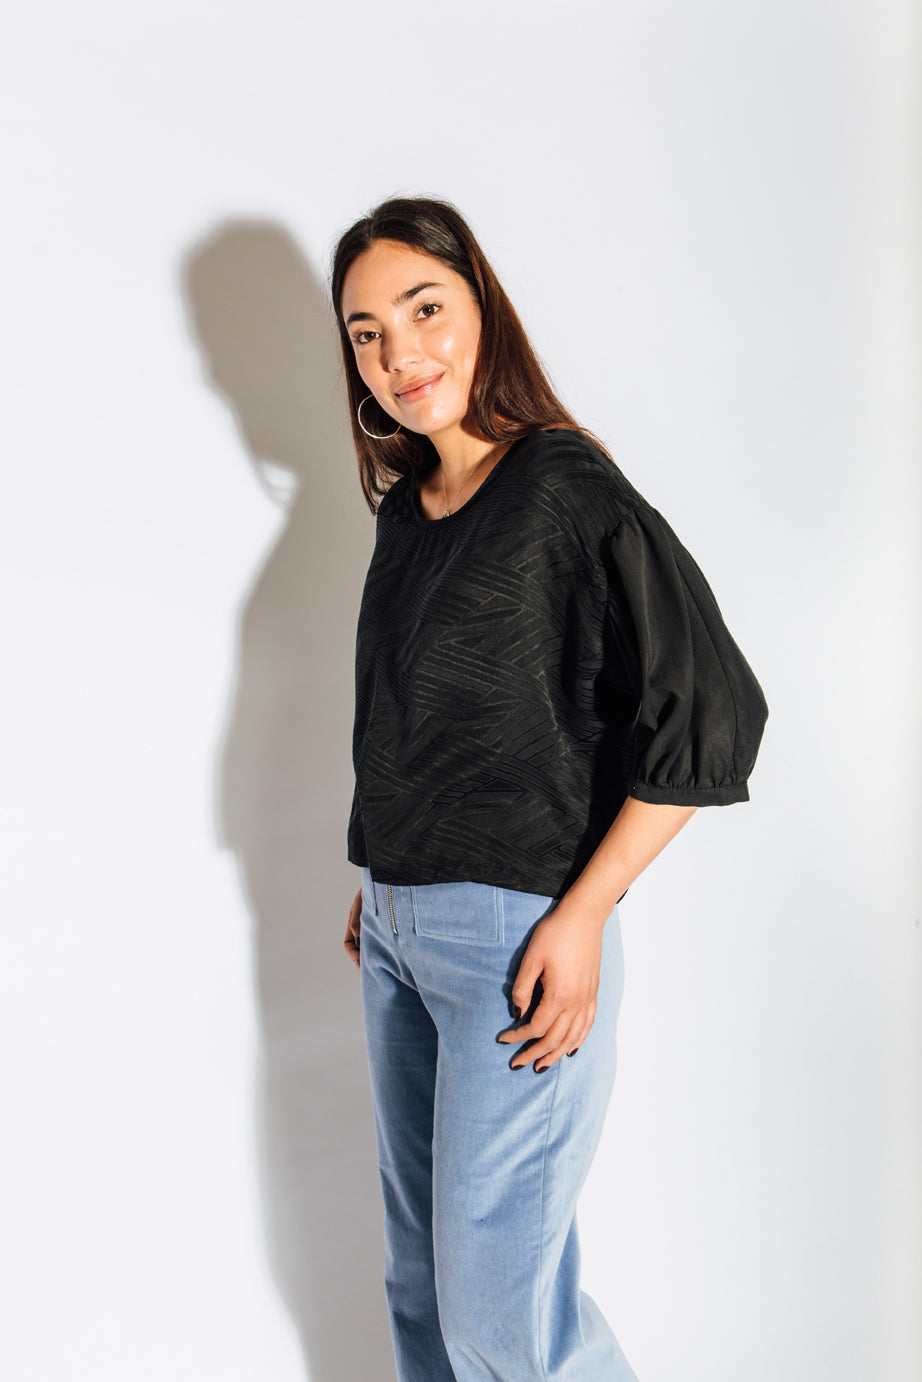 Eve Gravel Au Noir Top